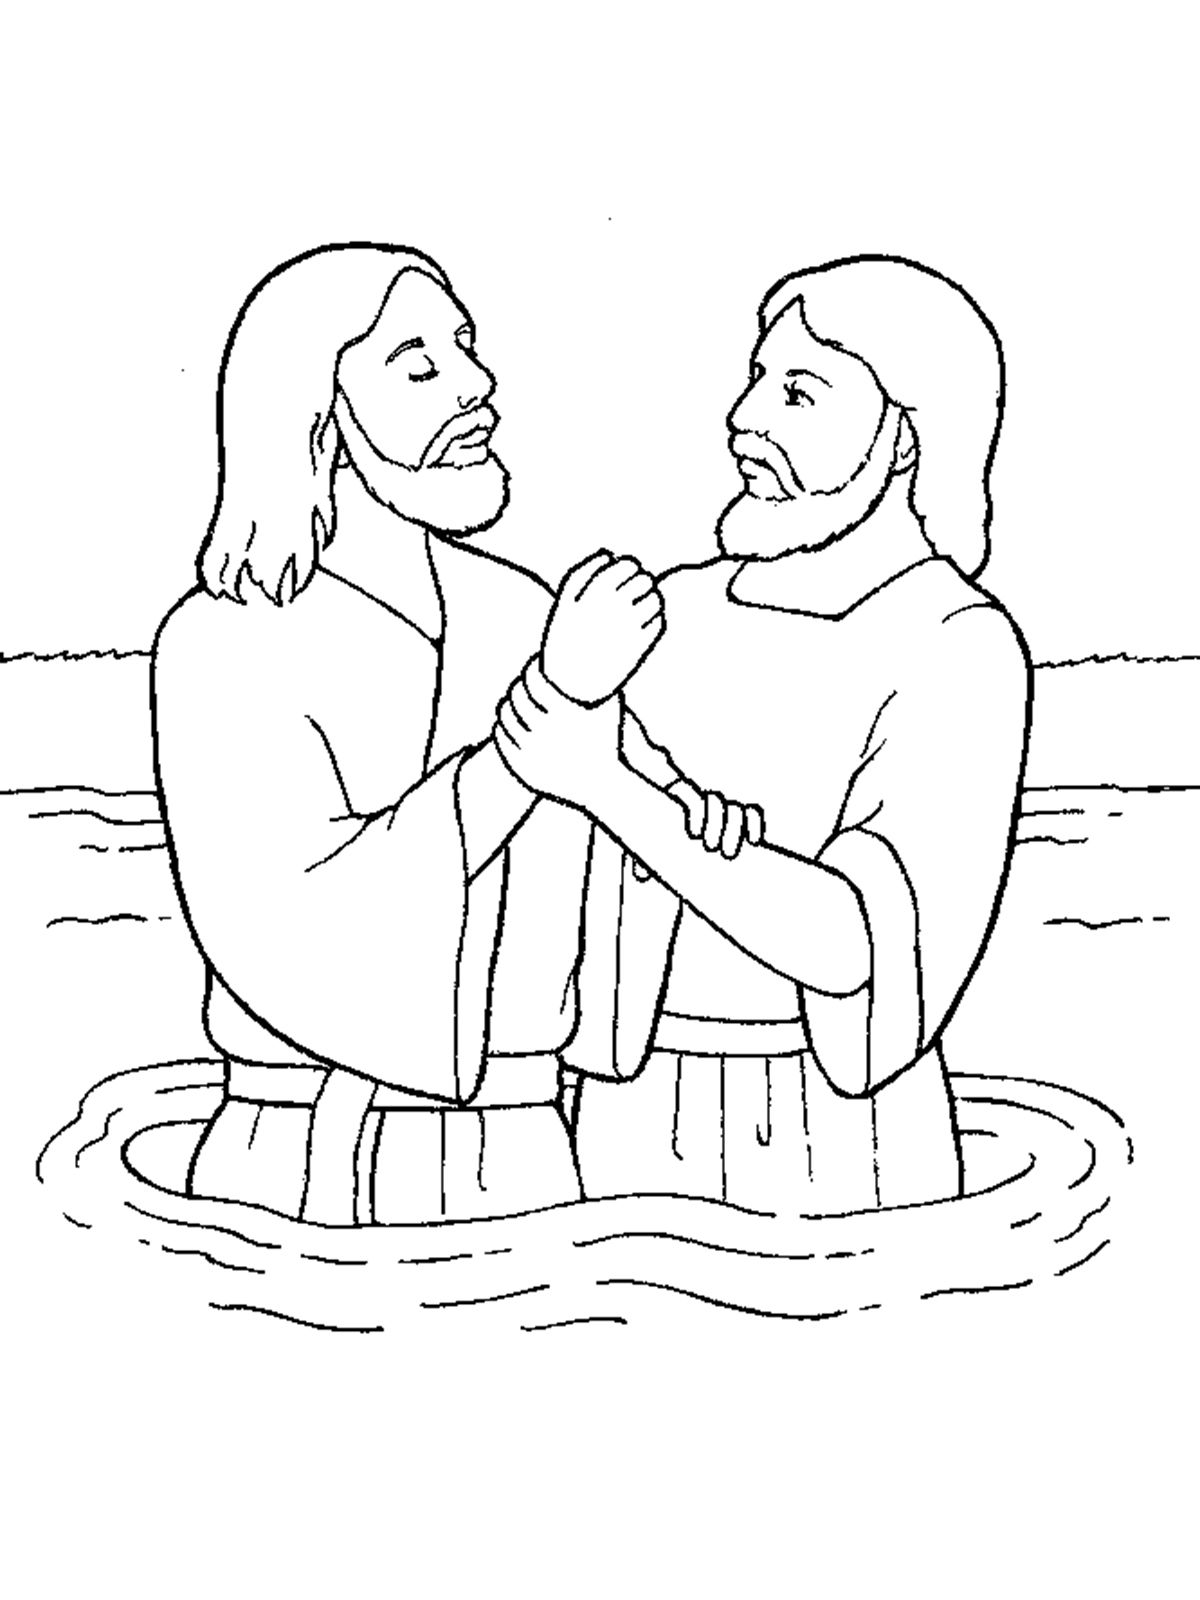 john baptizes jesus coloring page the best free baptized coloring page images download from page baptizes jesus john coloring